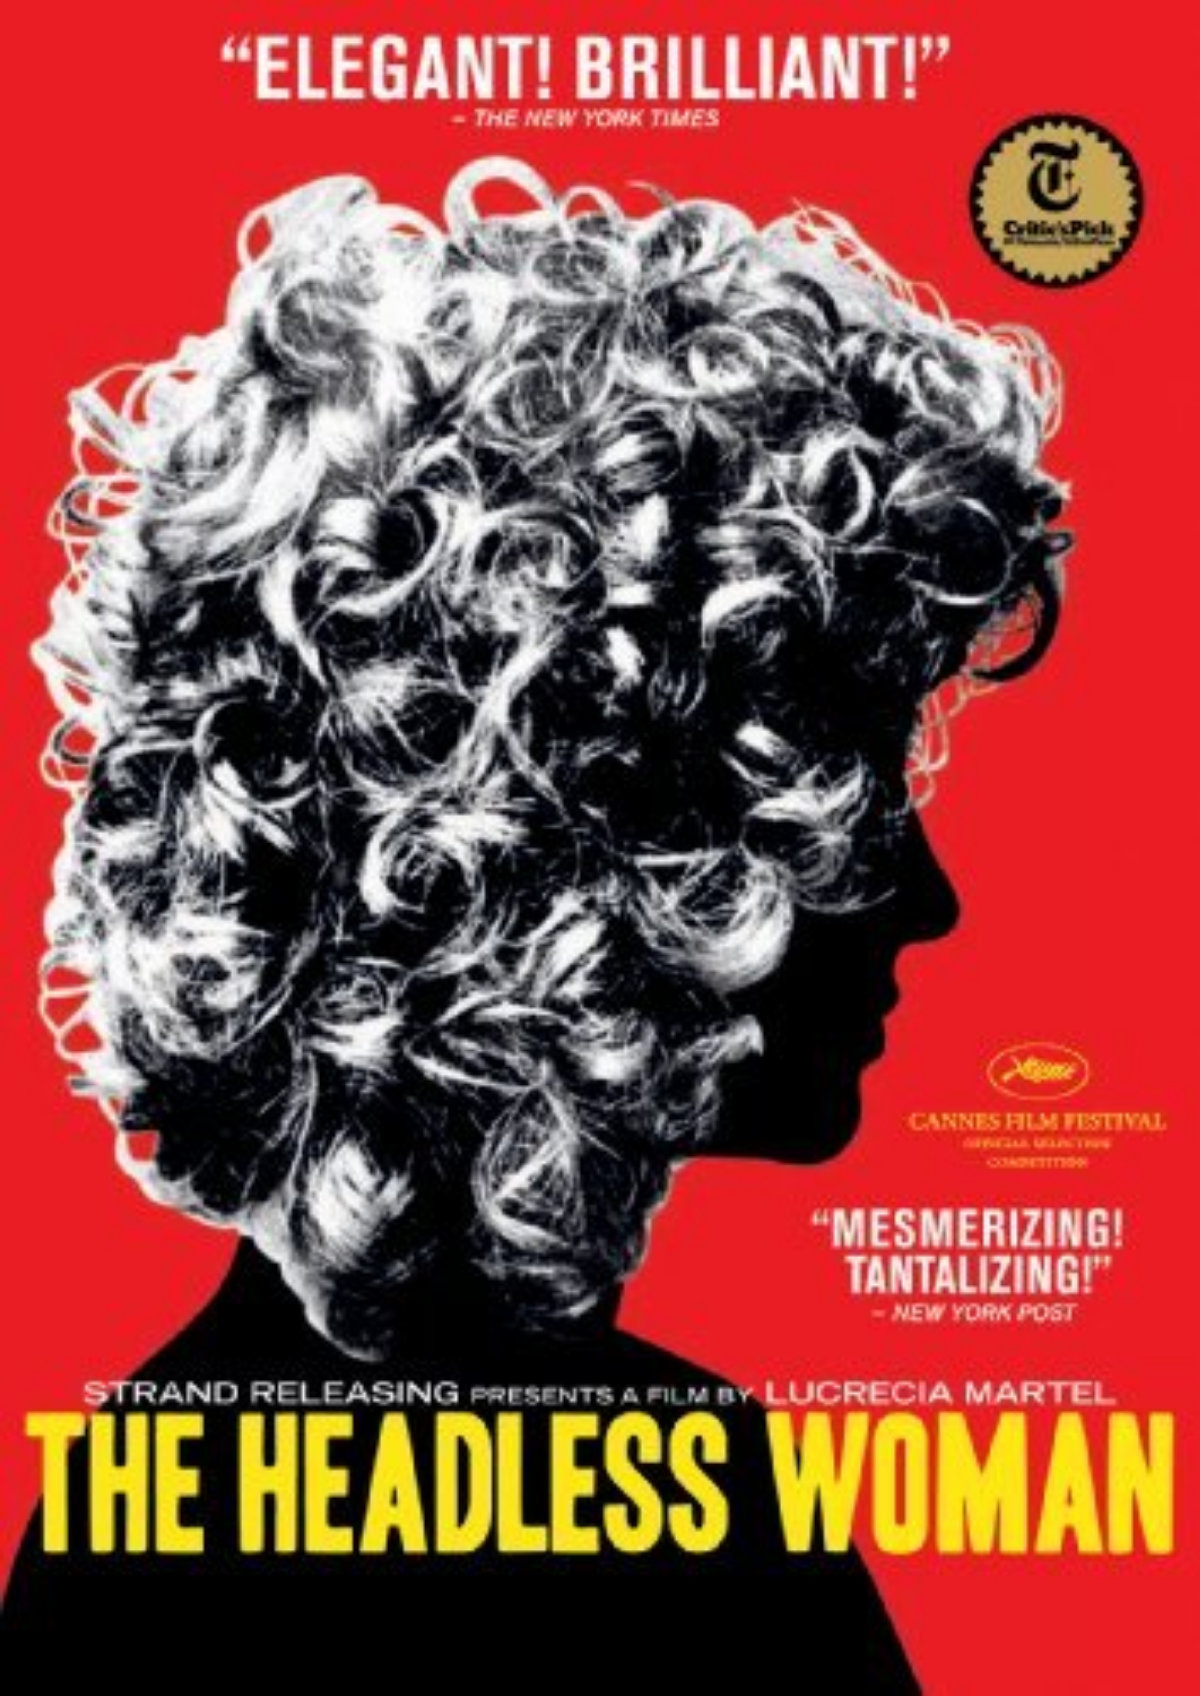 'The Headless Woman (La Mujer Sin Cabeza)' movie poster